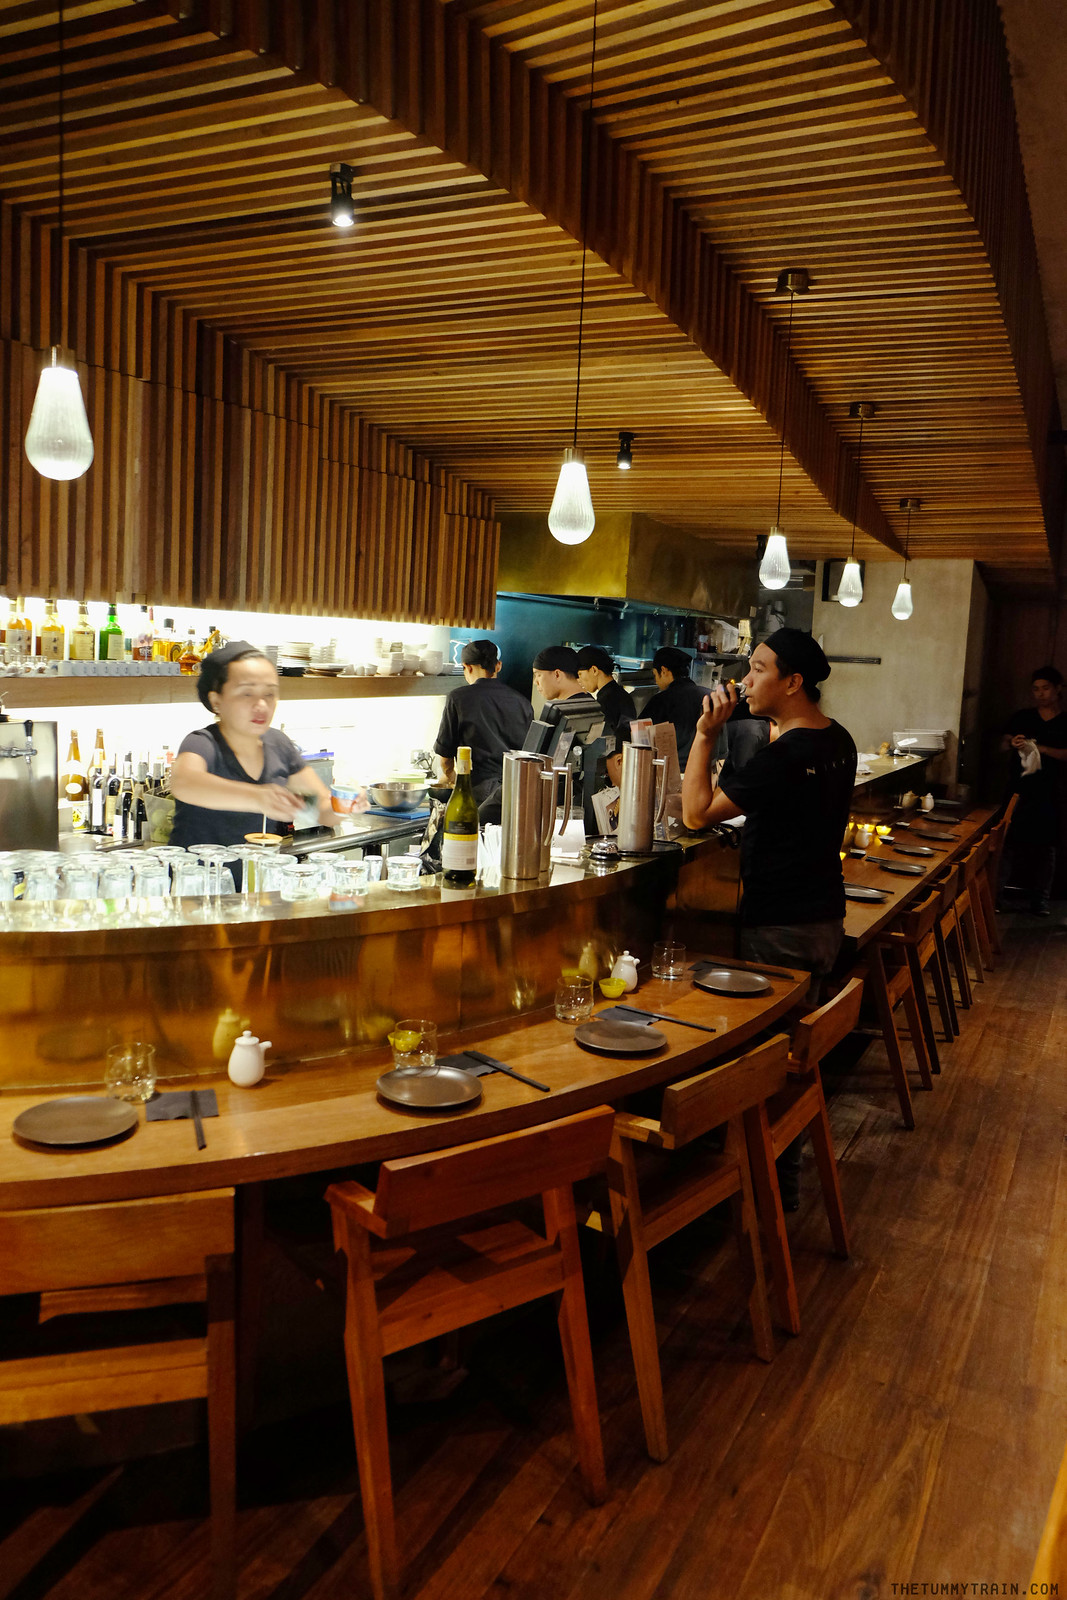 29001583090 123a276b19 h - Japanese meets Peruvian cuisine at trendy Nikkei in Legazpi Village